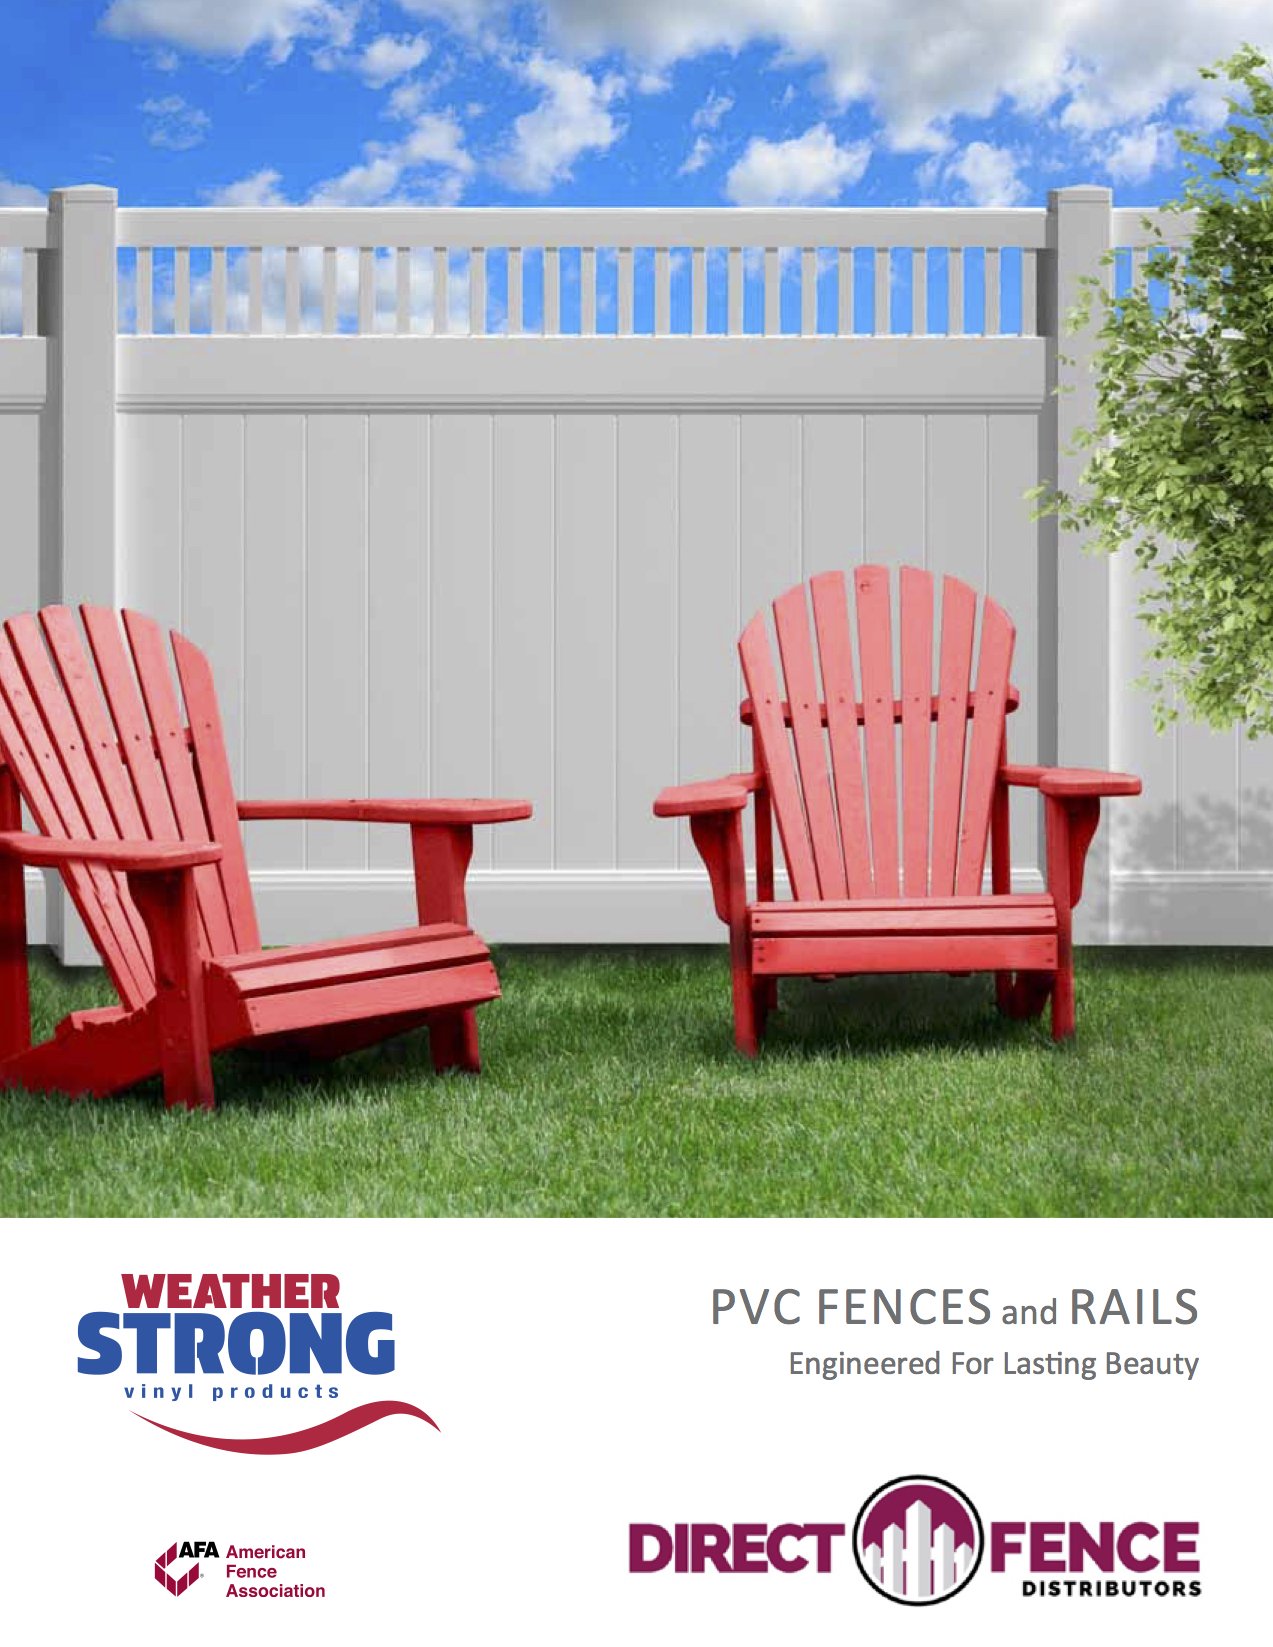 vinyl fence Toms River NJ brochure